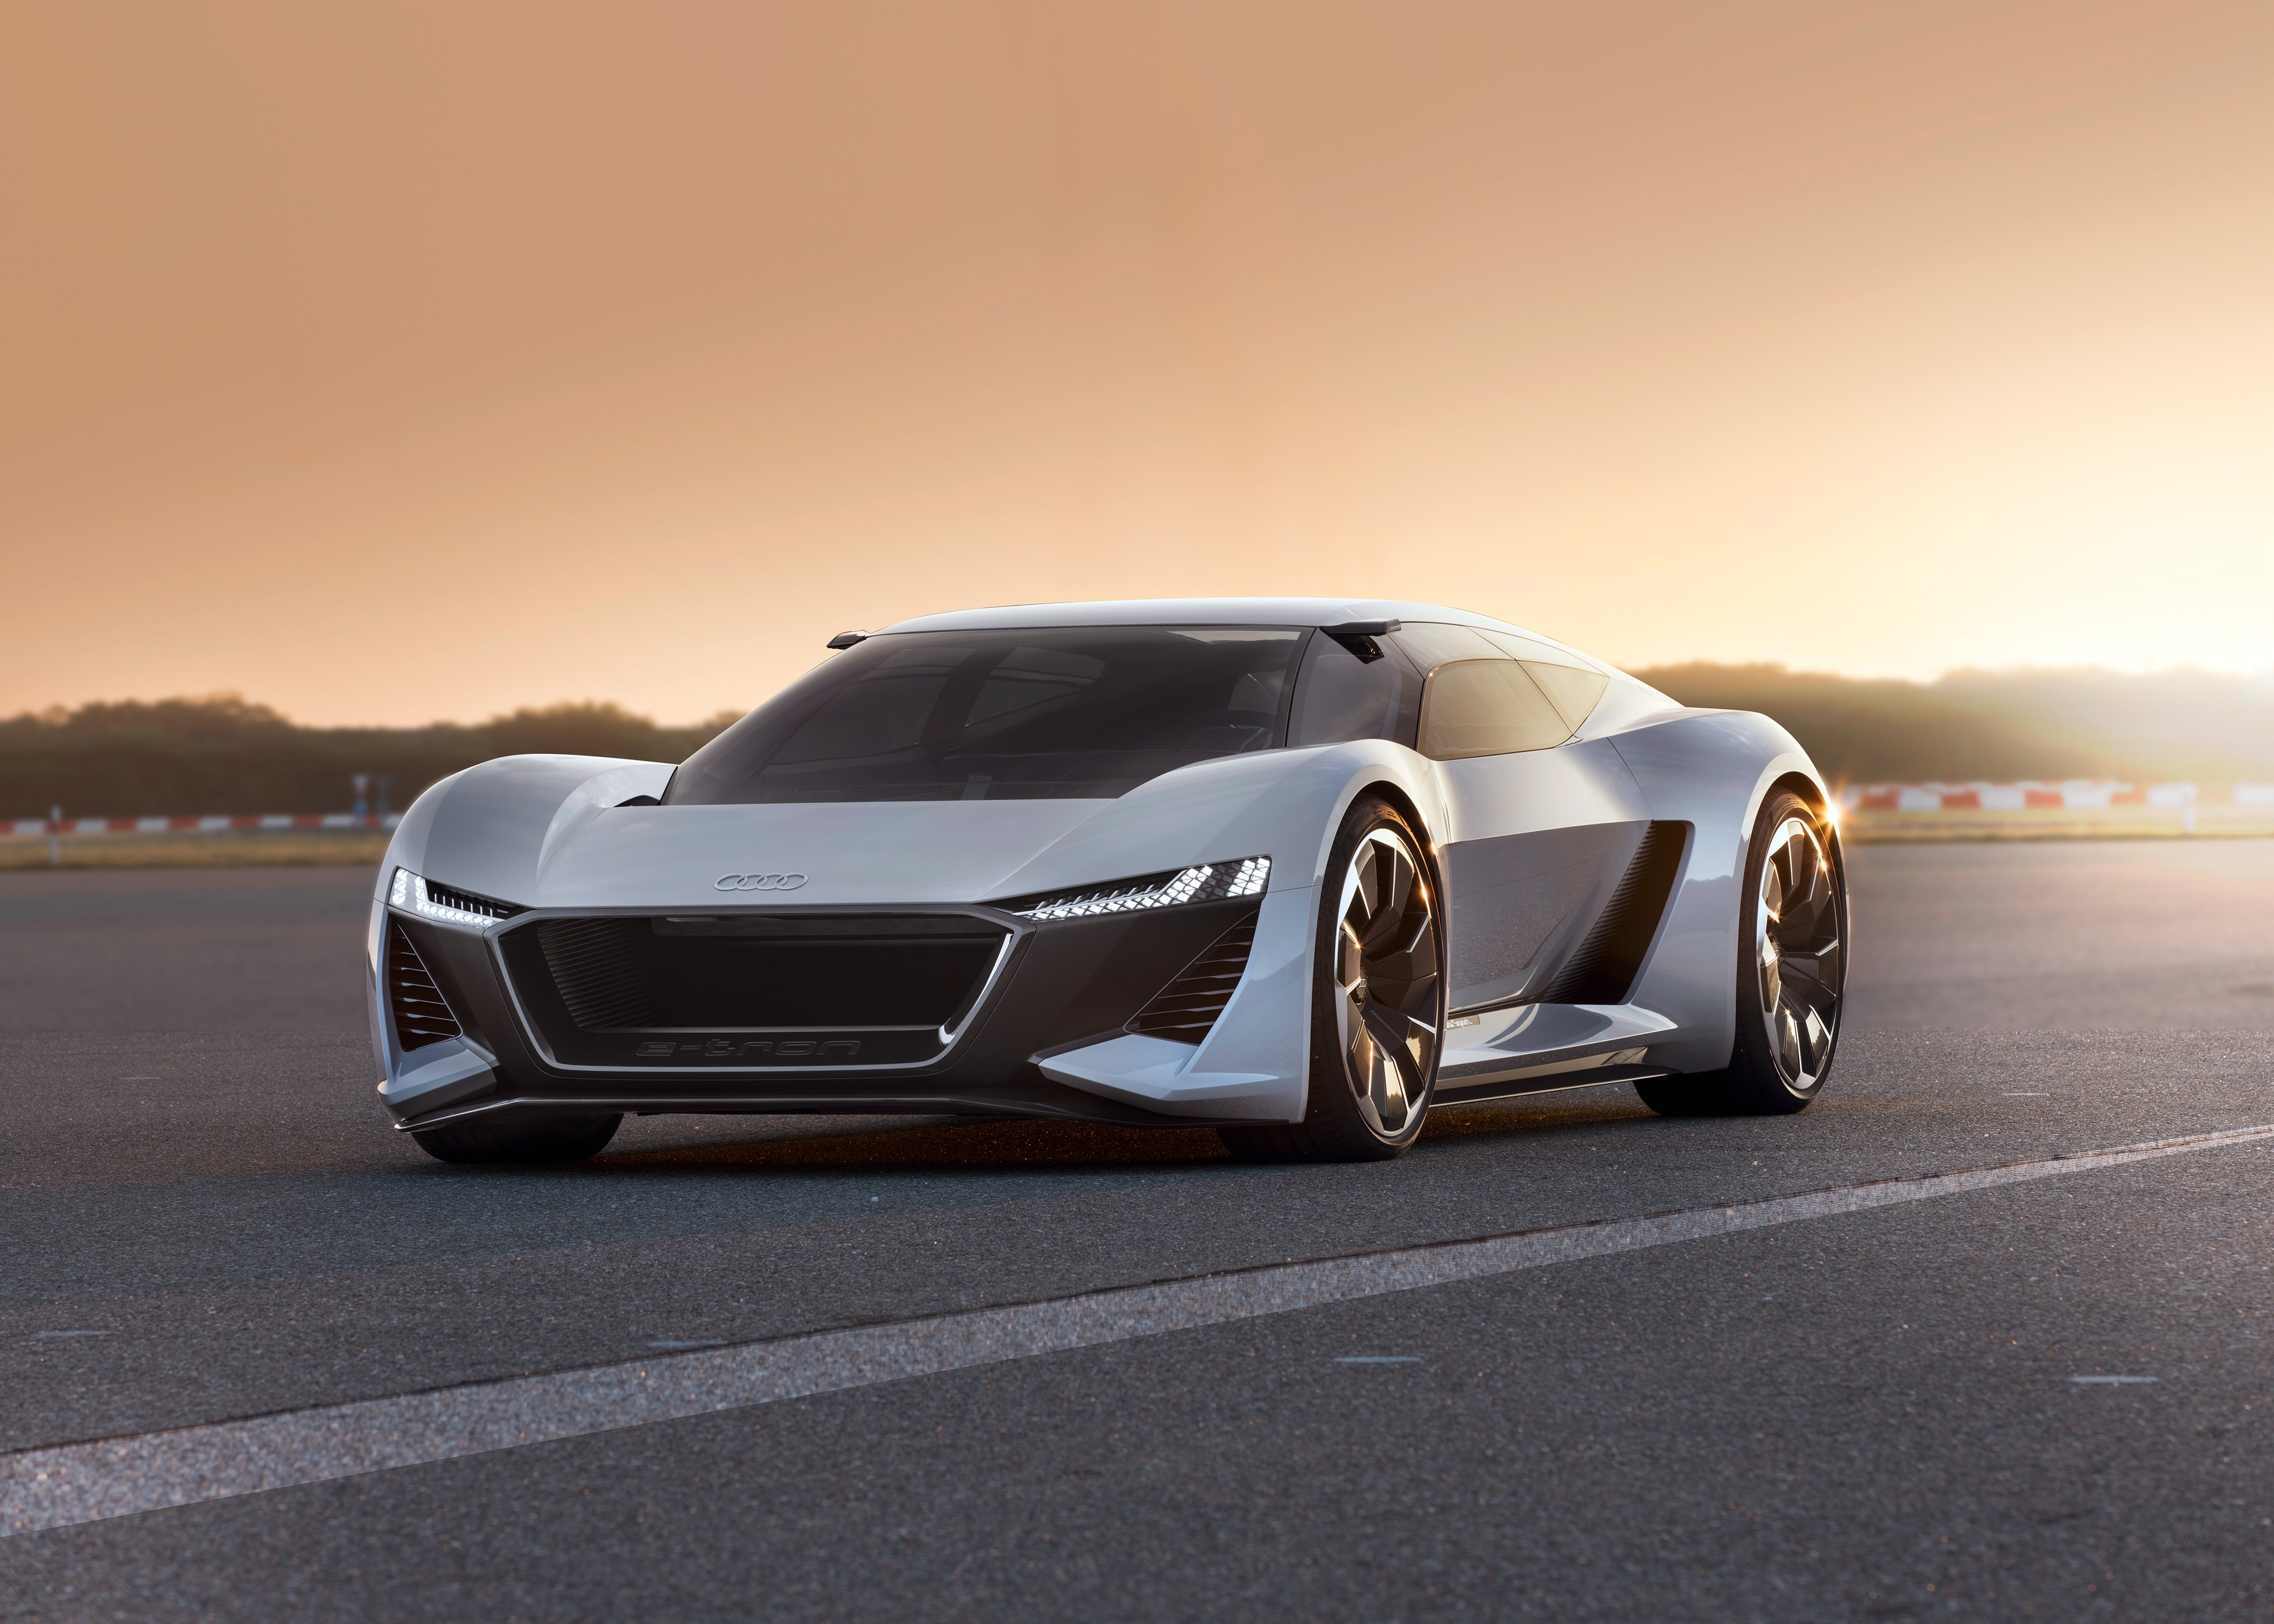 audi pb 18 e tron 4096x2925 electric supercar 2019 4k